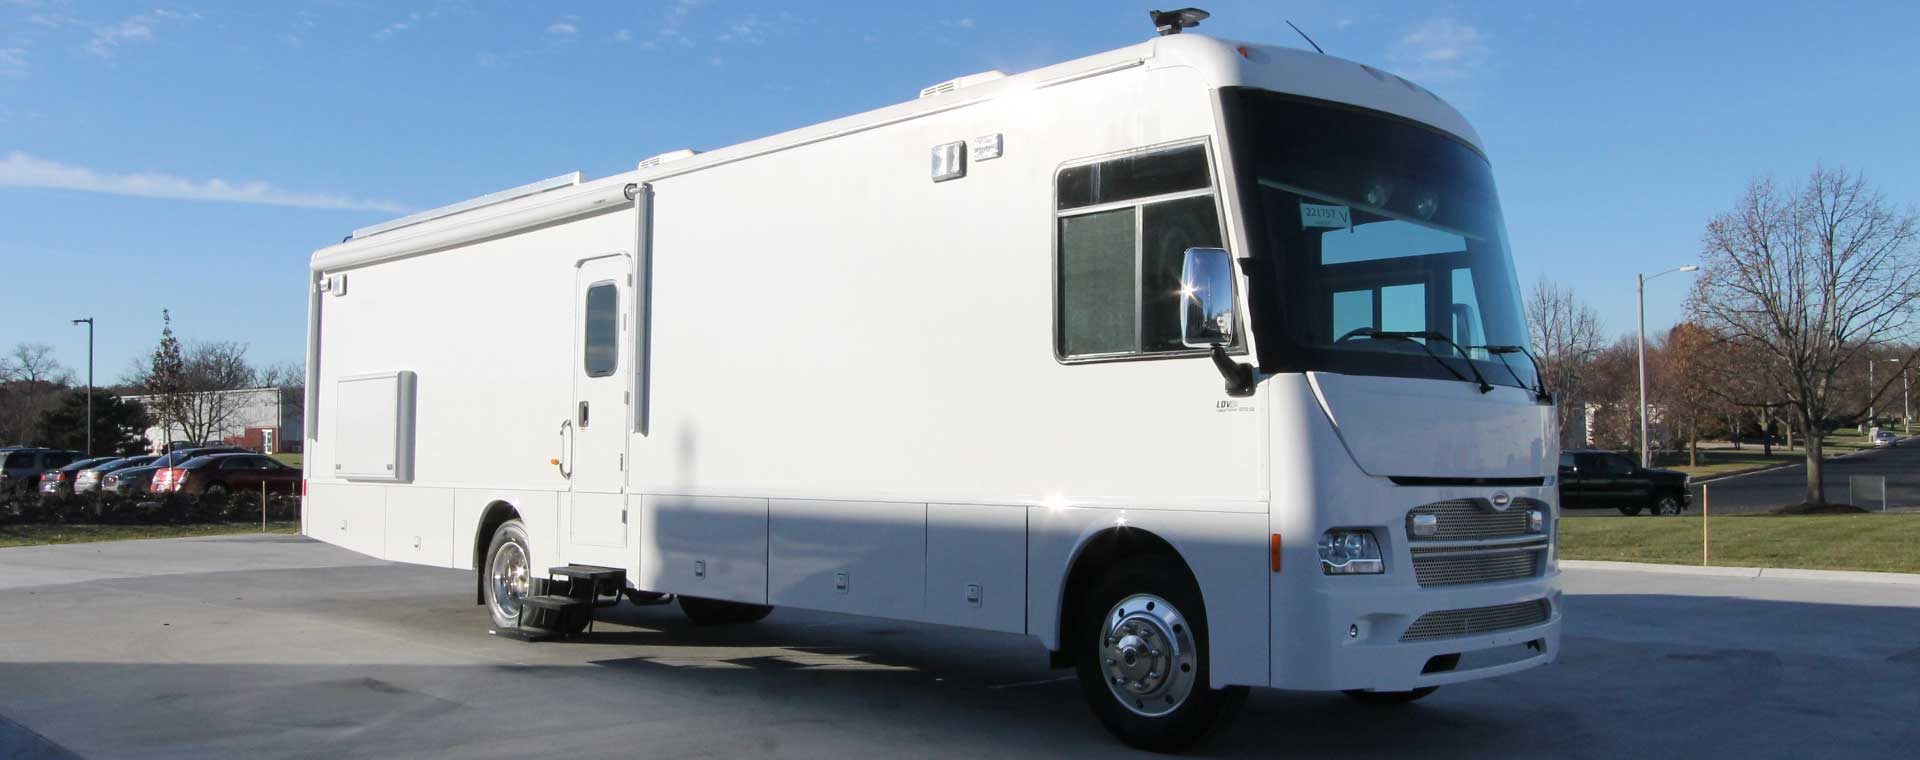 Coach Mobile Command Center